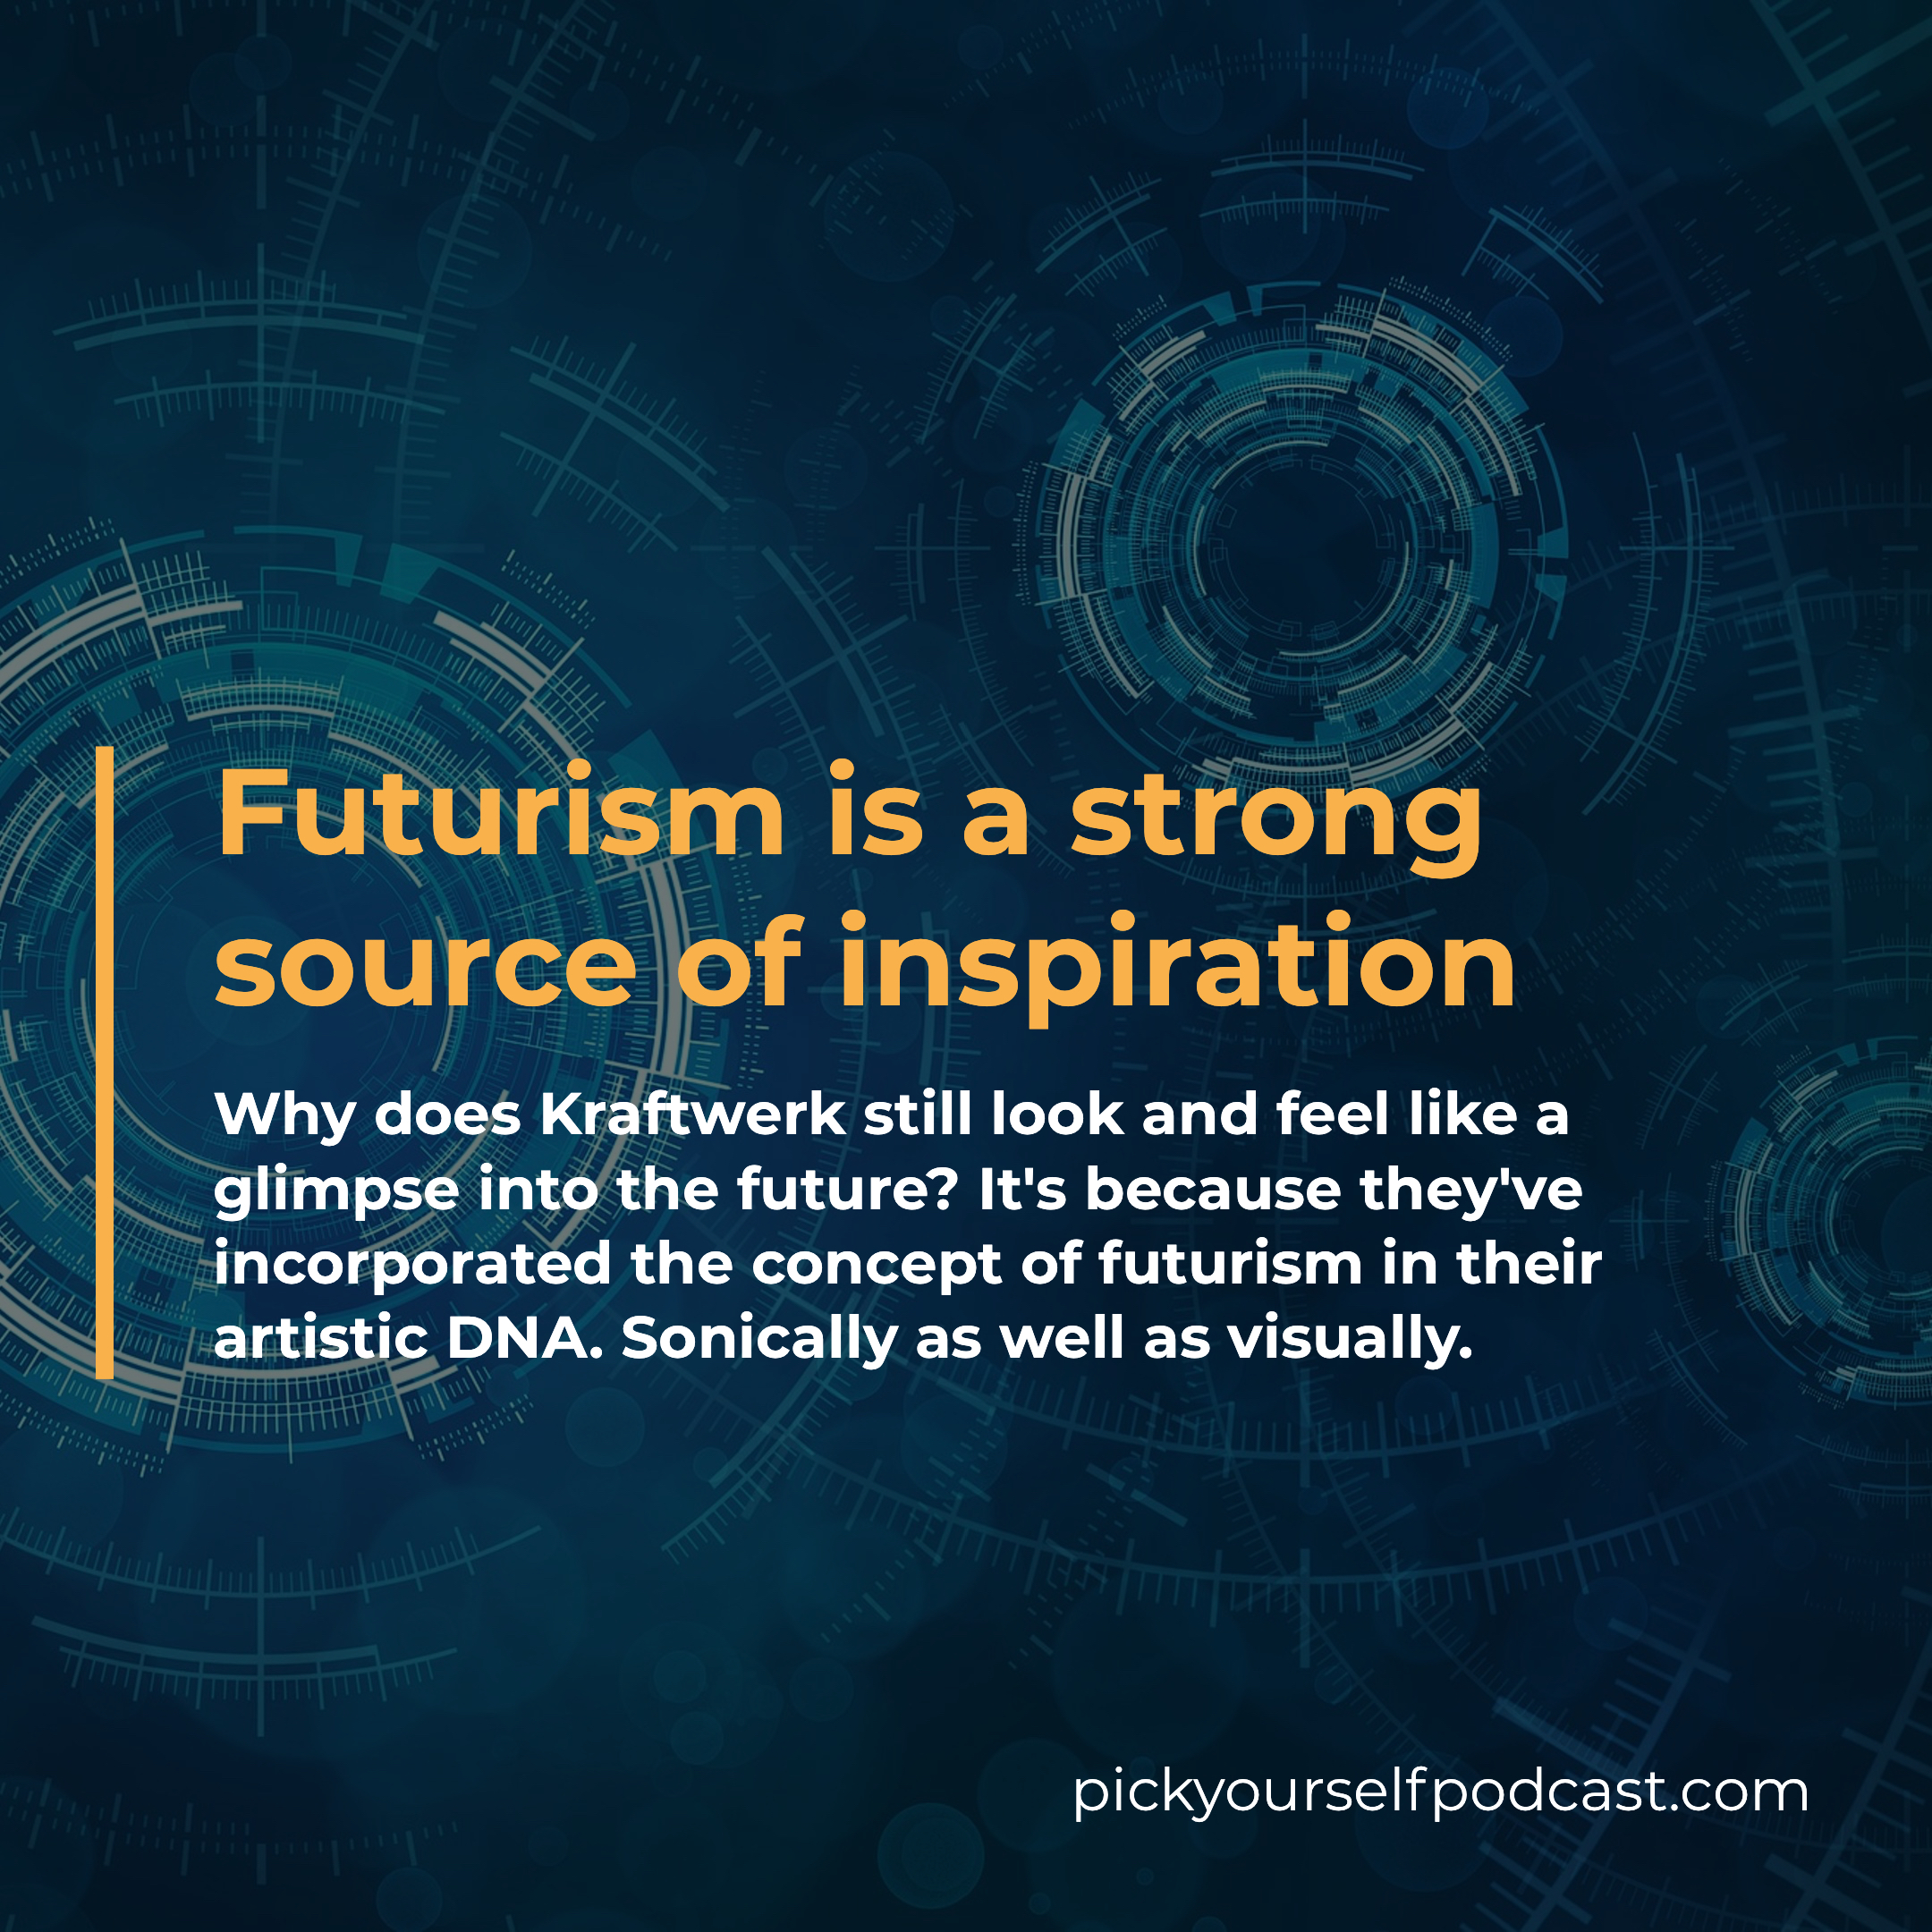 Futurism is a strong source of inspiration.